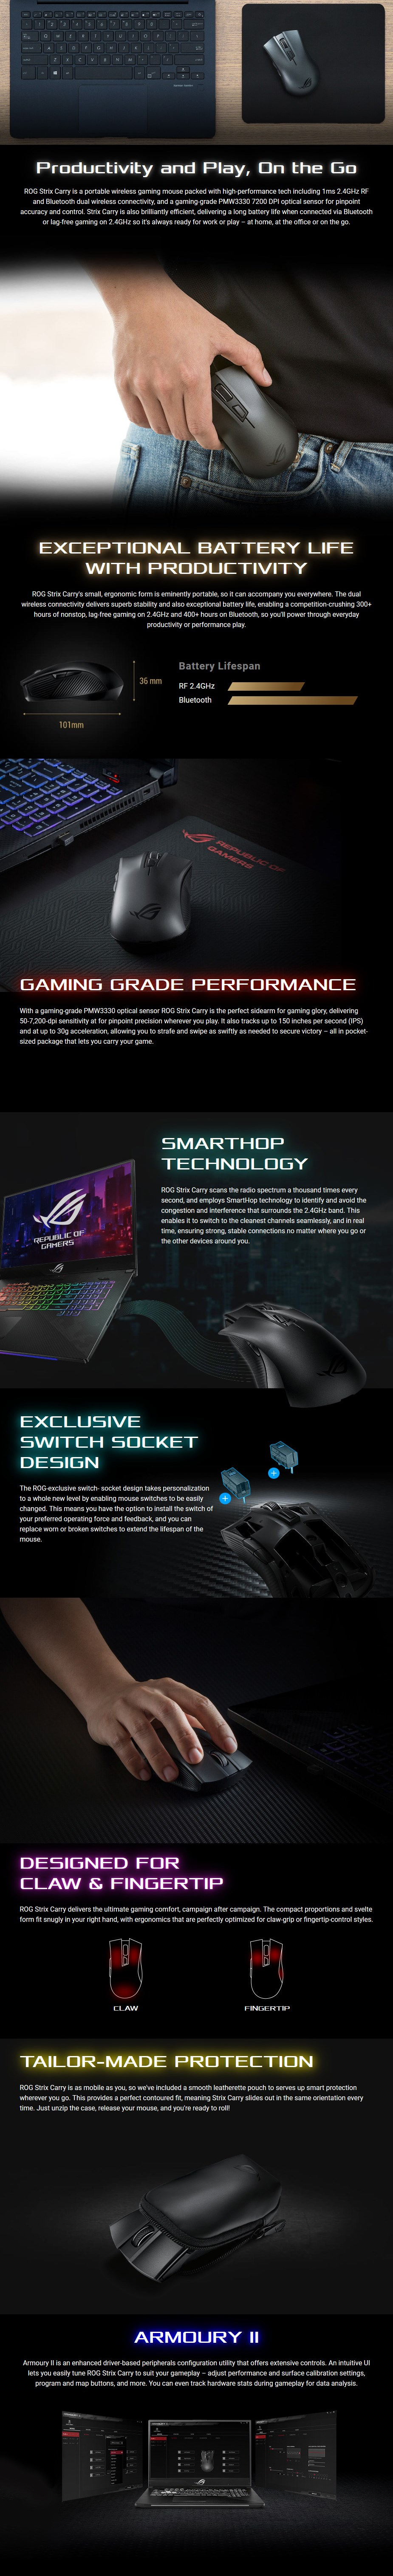 ASUS ROG Strix Carry Wireless Optical Gaming Mouse - Overview 2